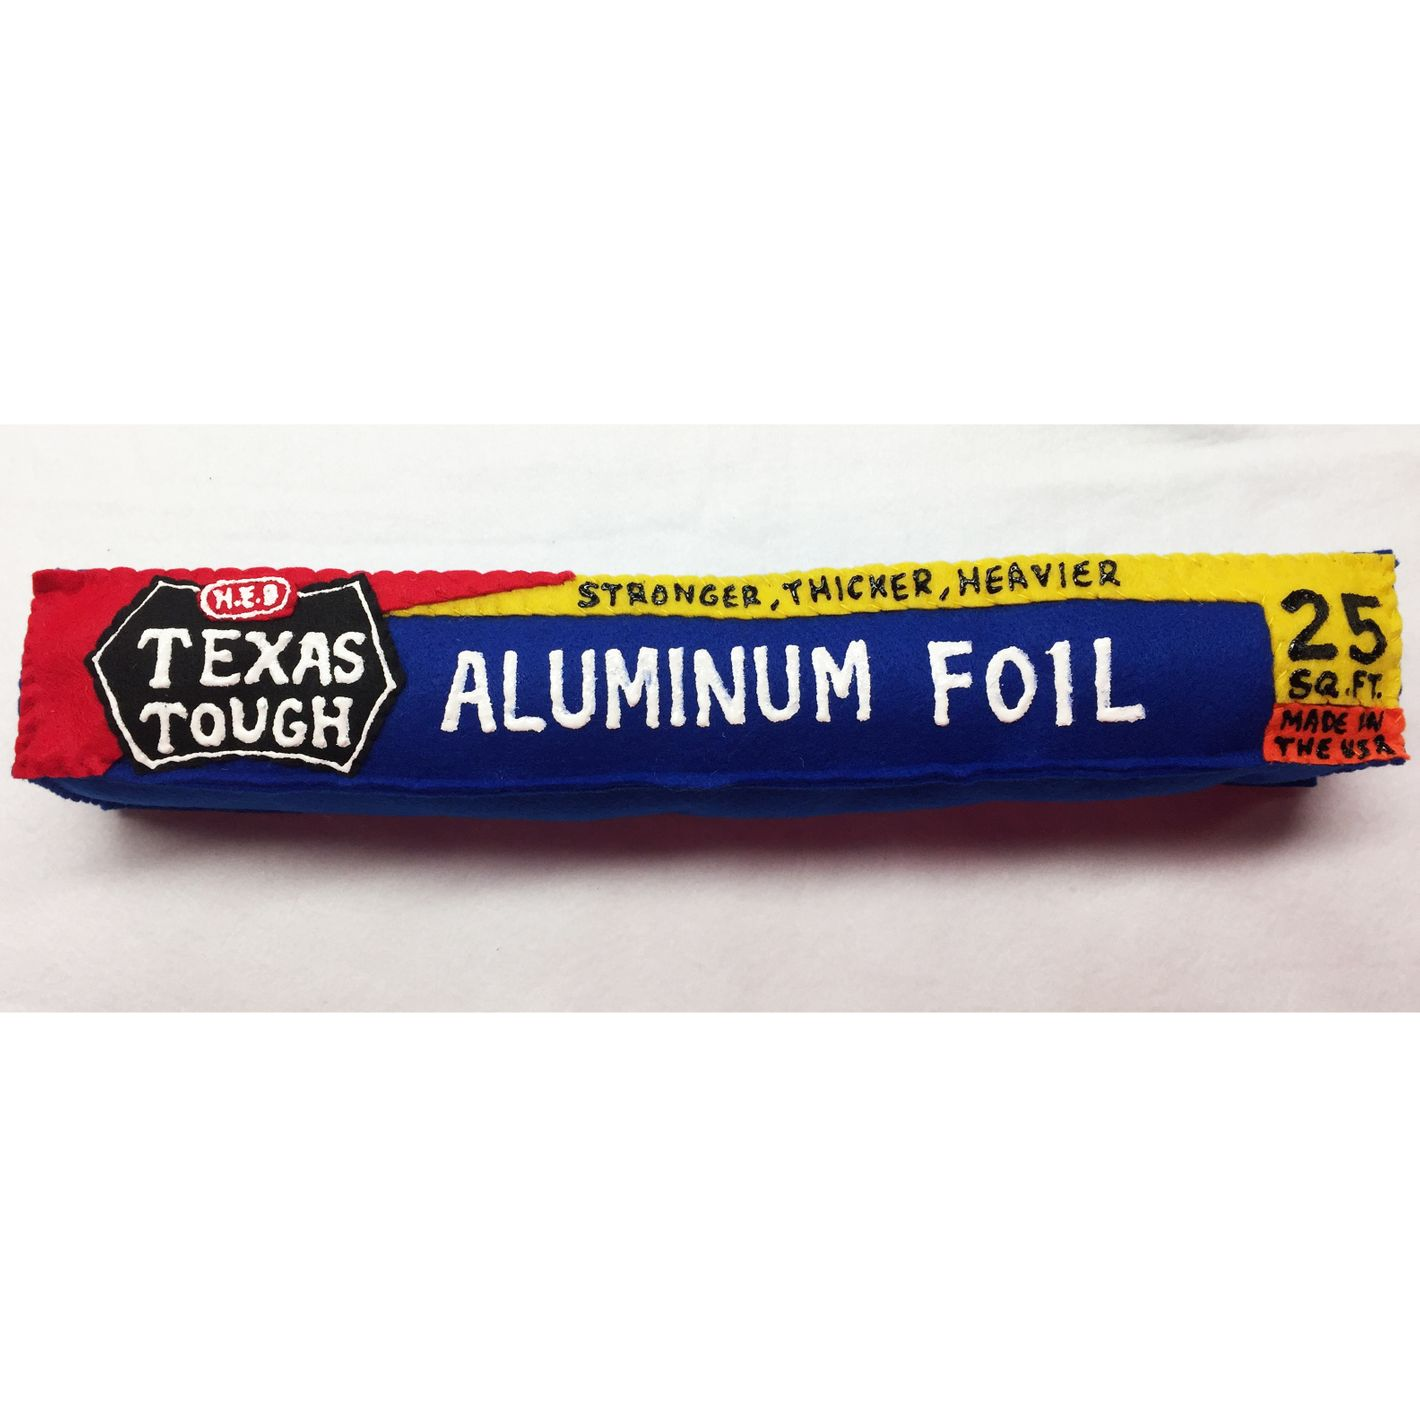 Texas Tough Aluminum Foil